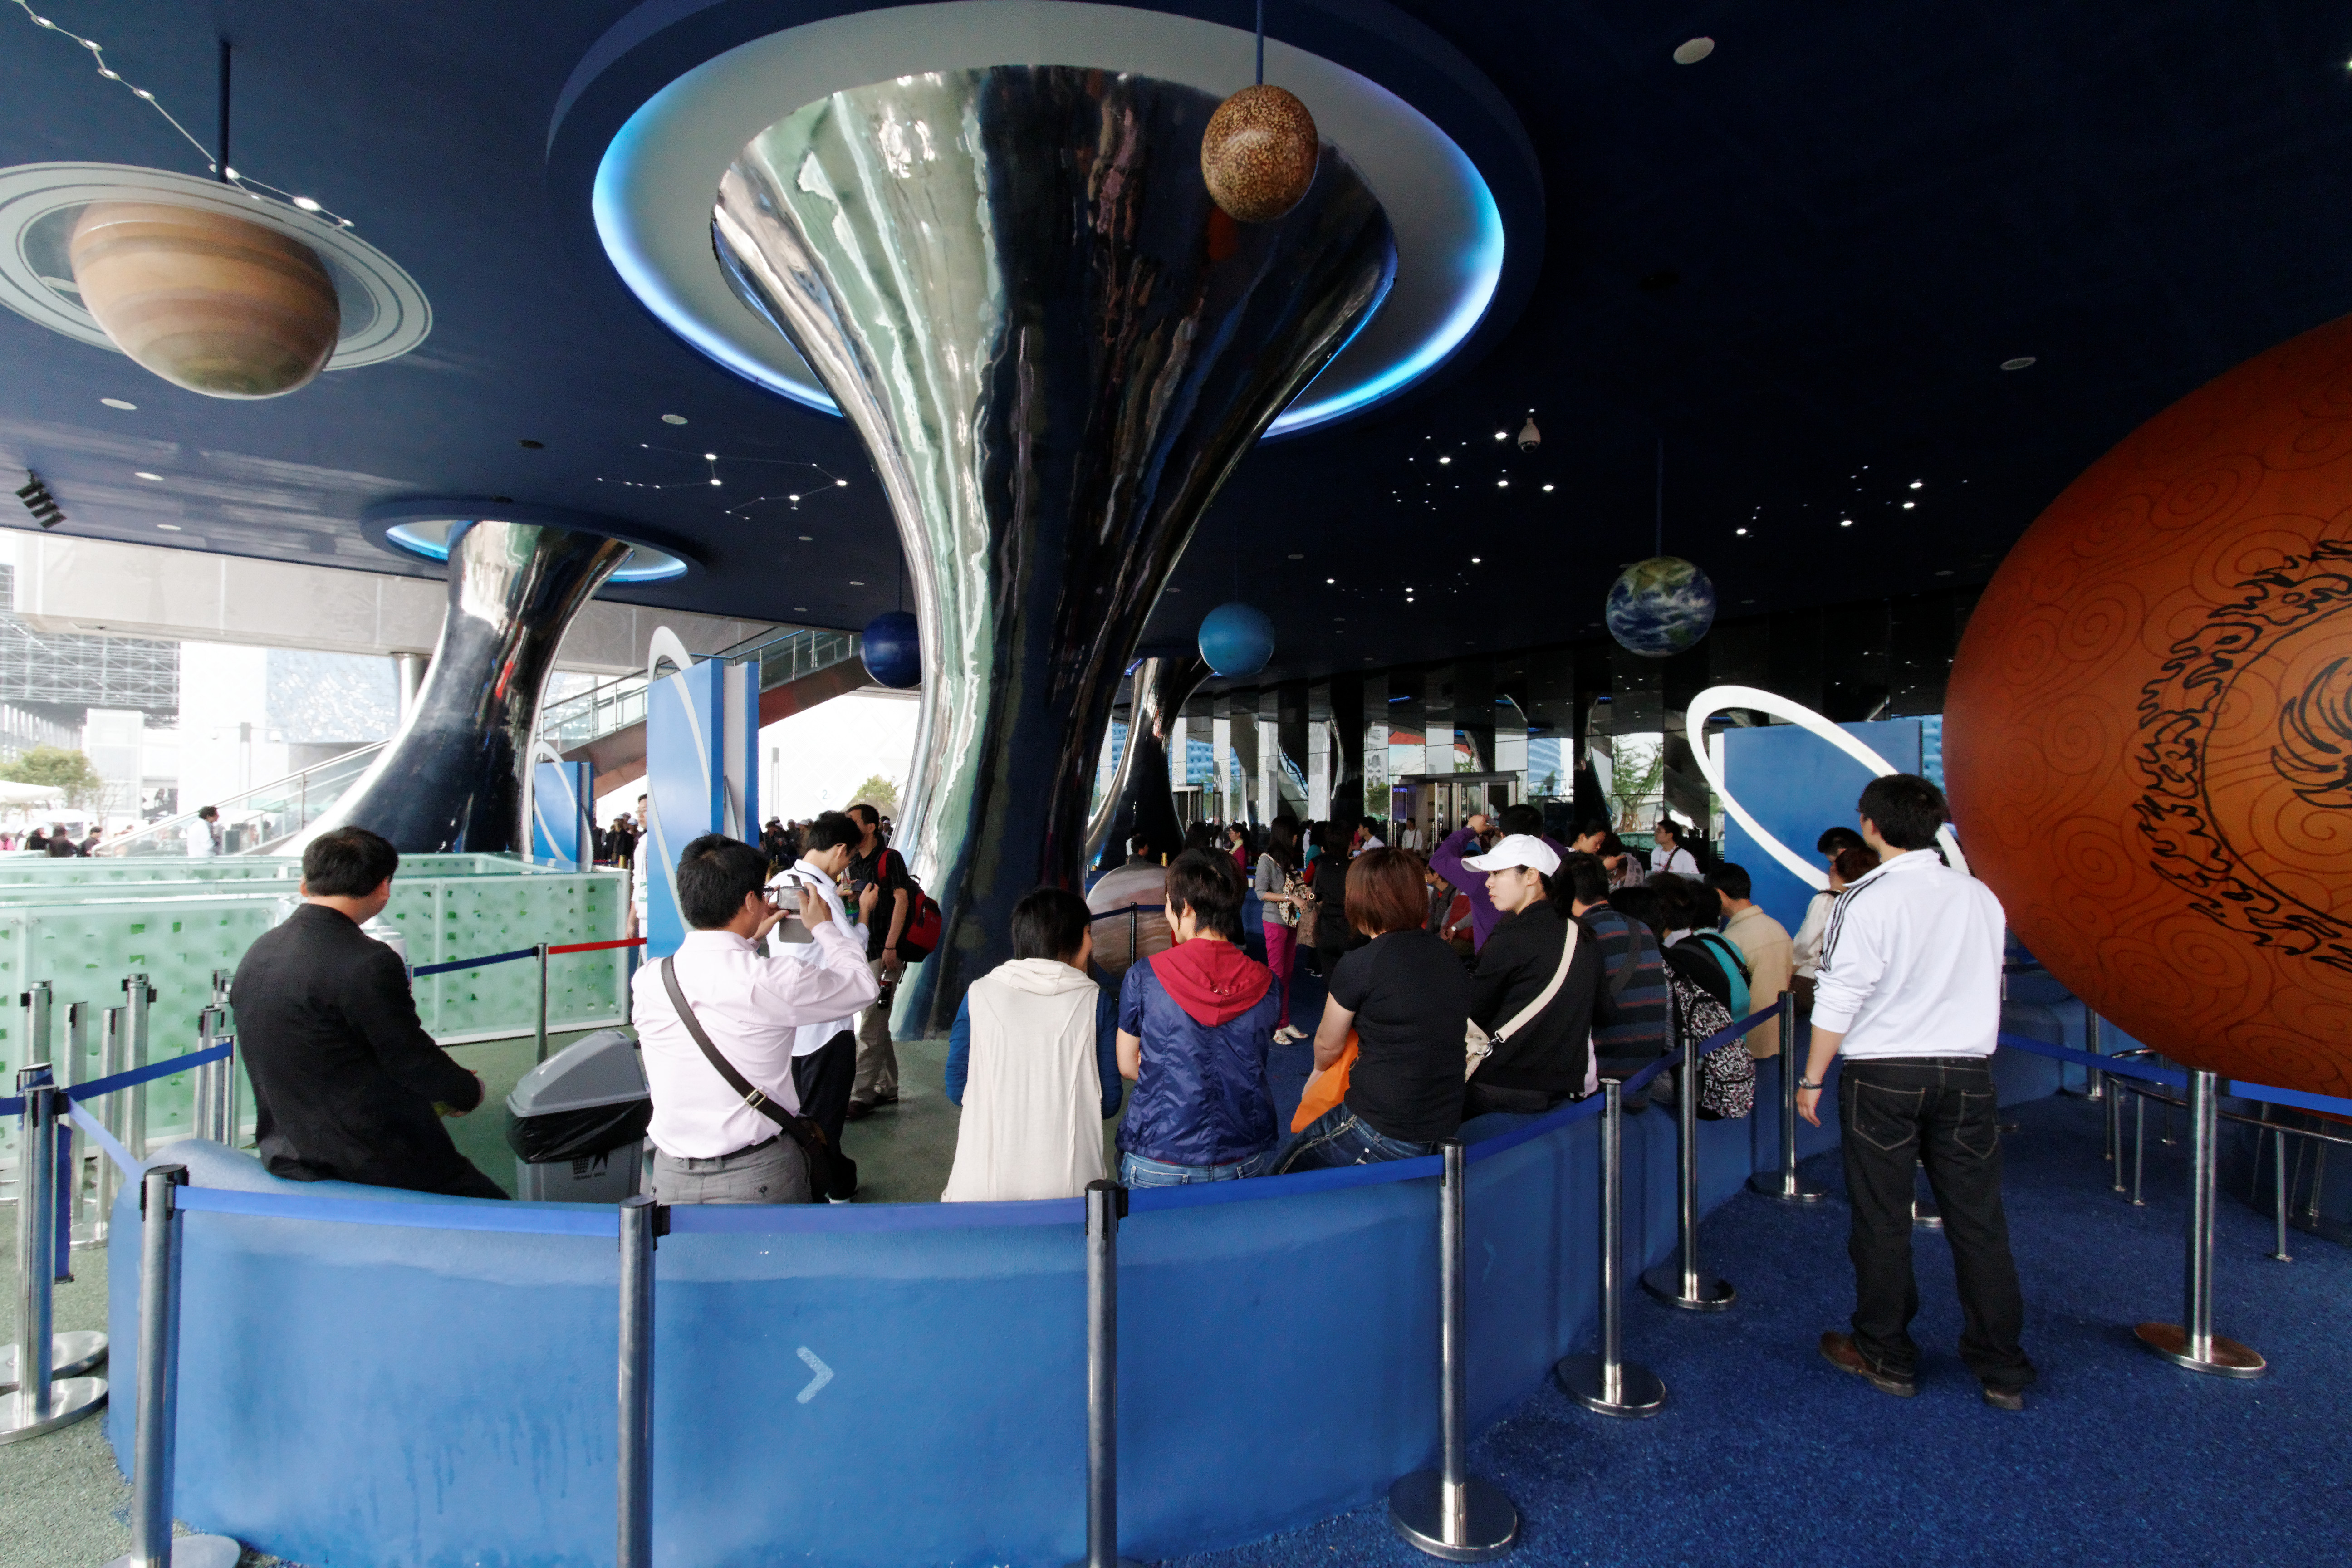 space home. File:Space Home Pavilion, Waiting Area.jpg Space